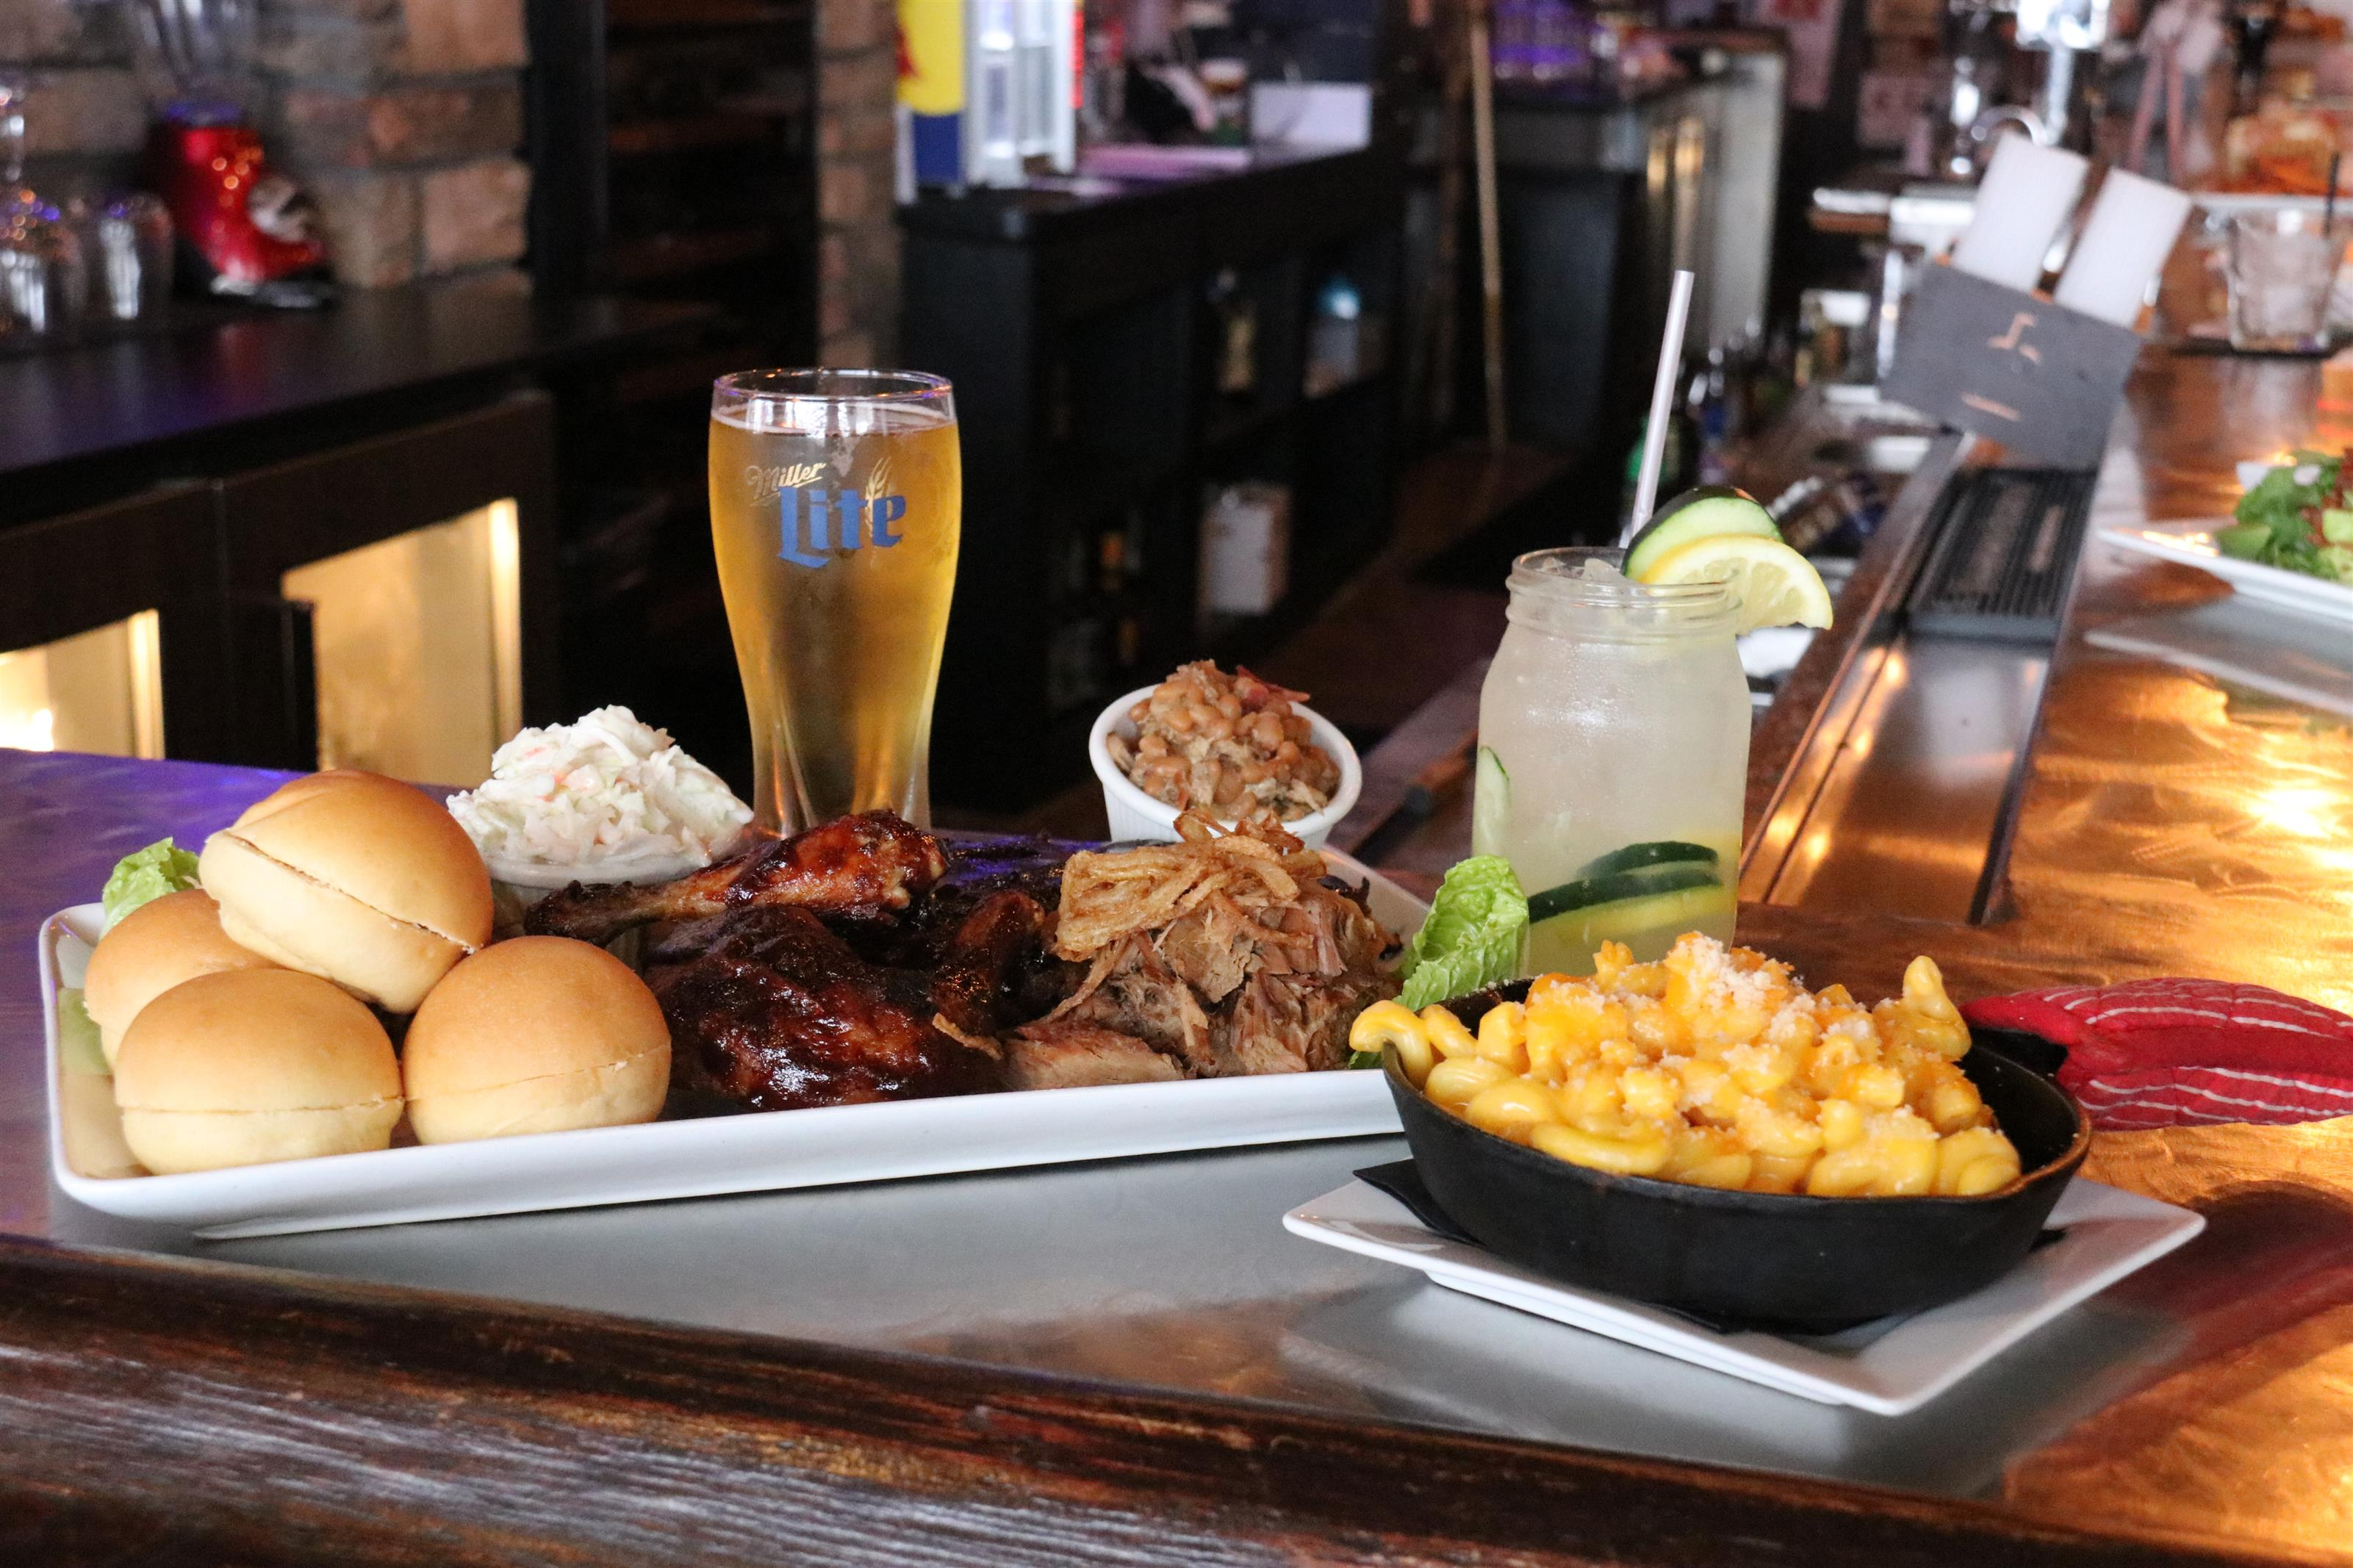 Bobby D's BBQ Sampler. ½ rack ribs, smoked brisket, pulled pork and BBQ chicken Quarter served with slider buns, creamy coleslaw, baked beans and mac & cheese skillet.